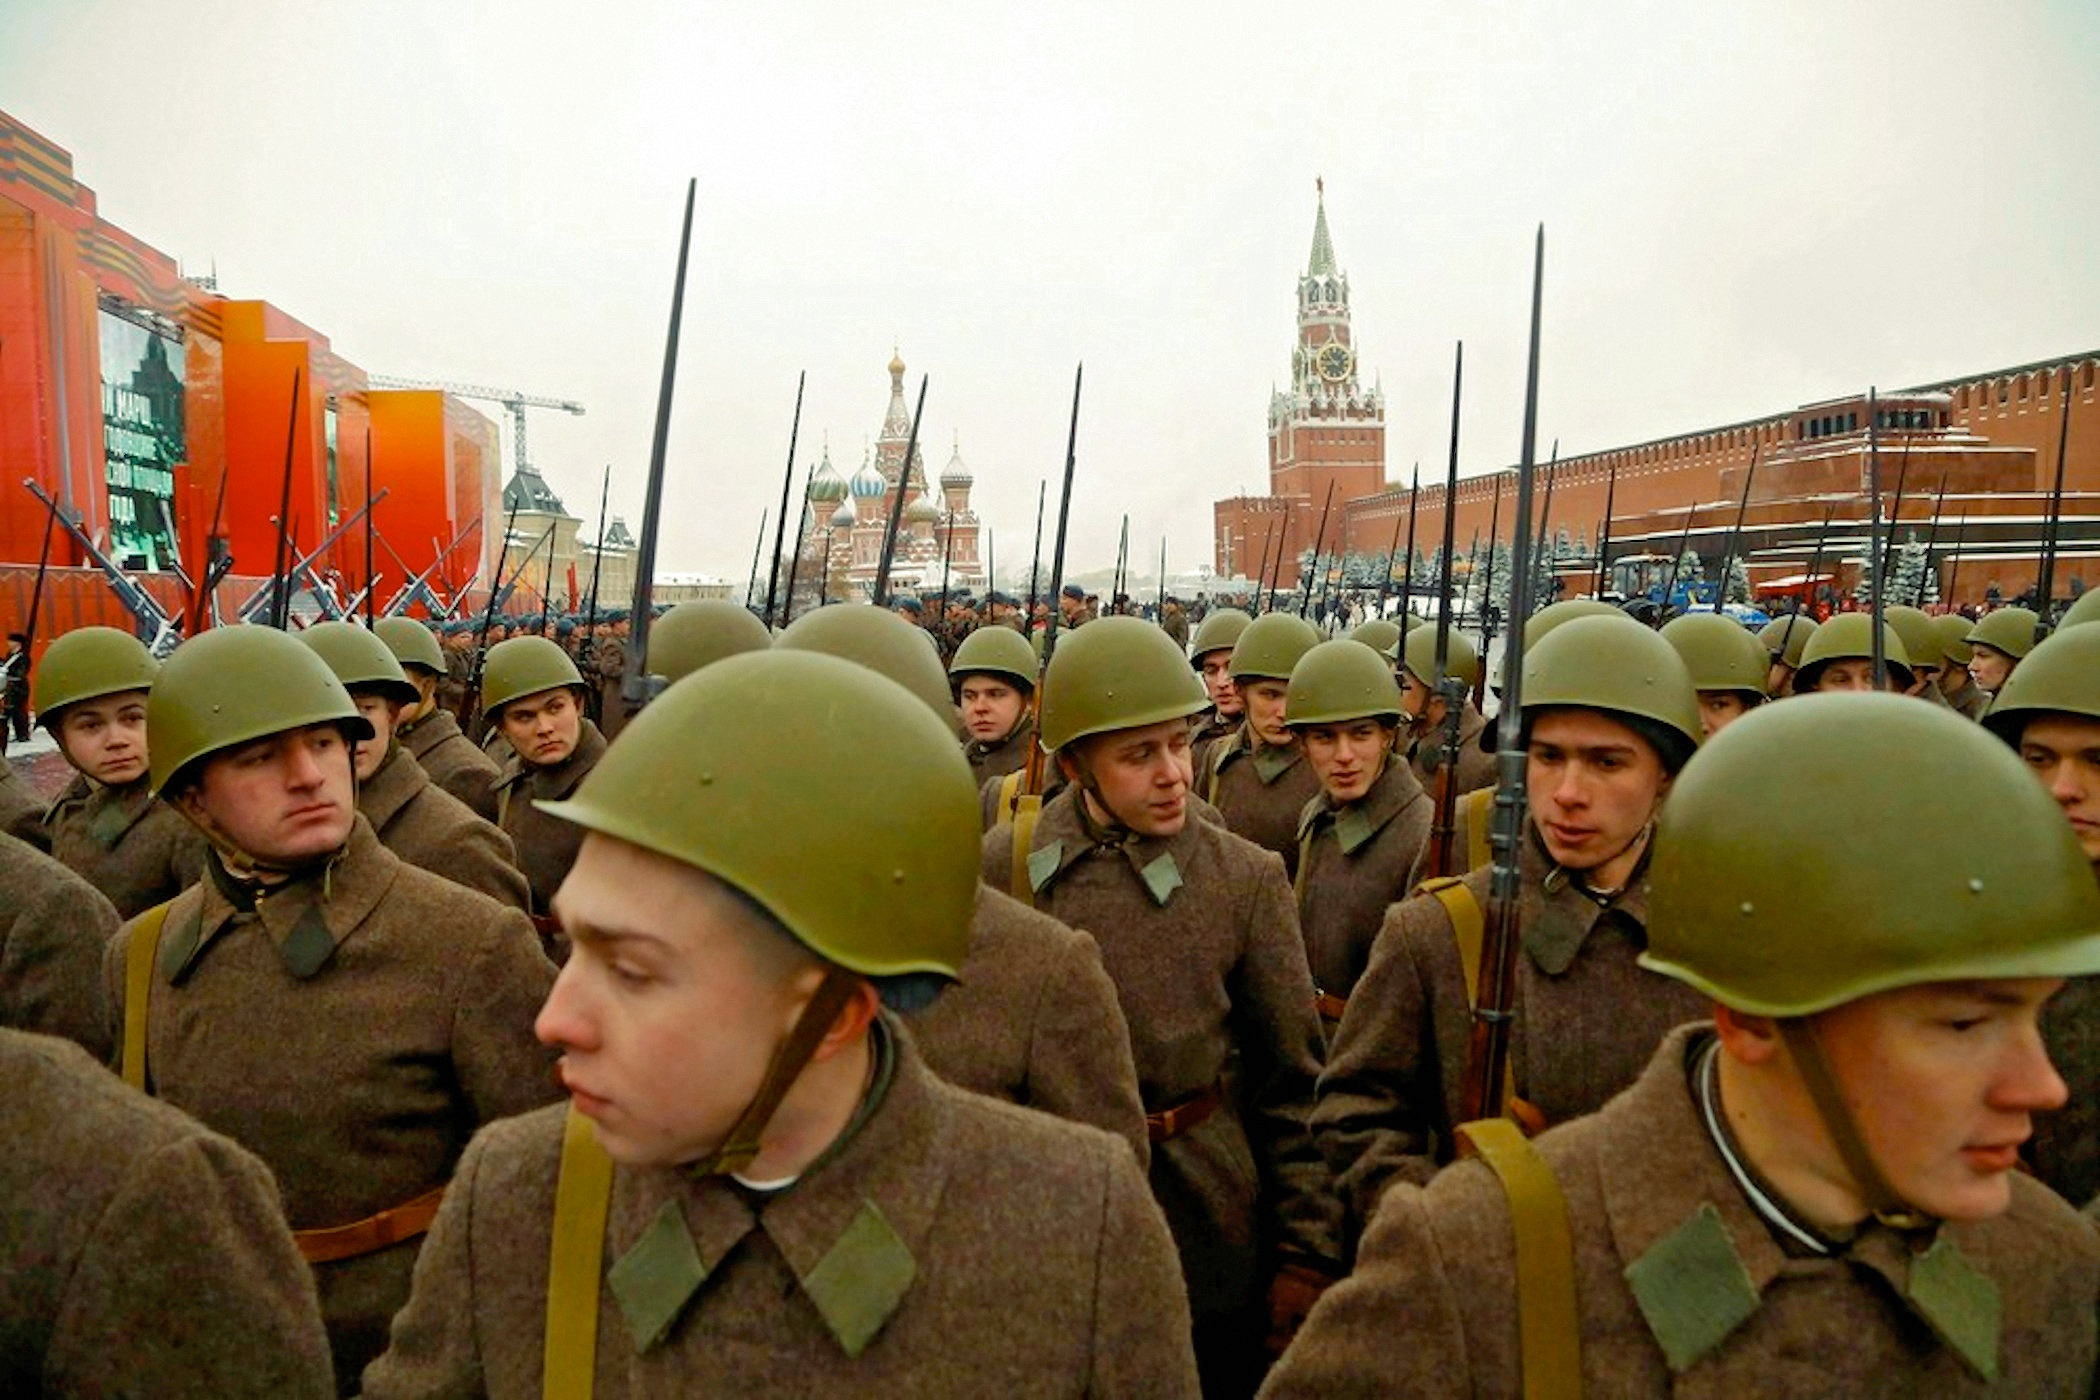 00-russia-red-square-7-november-05-201116